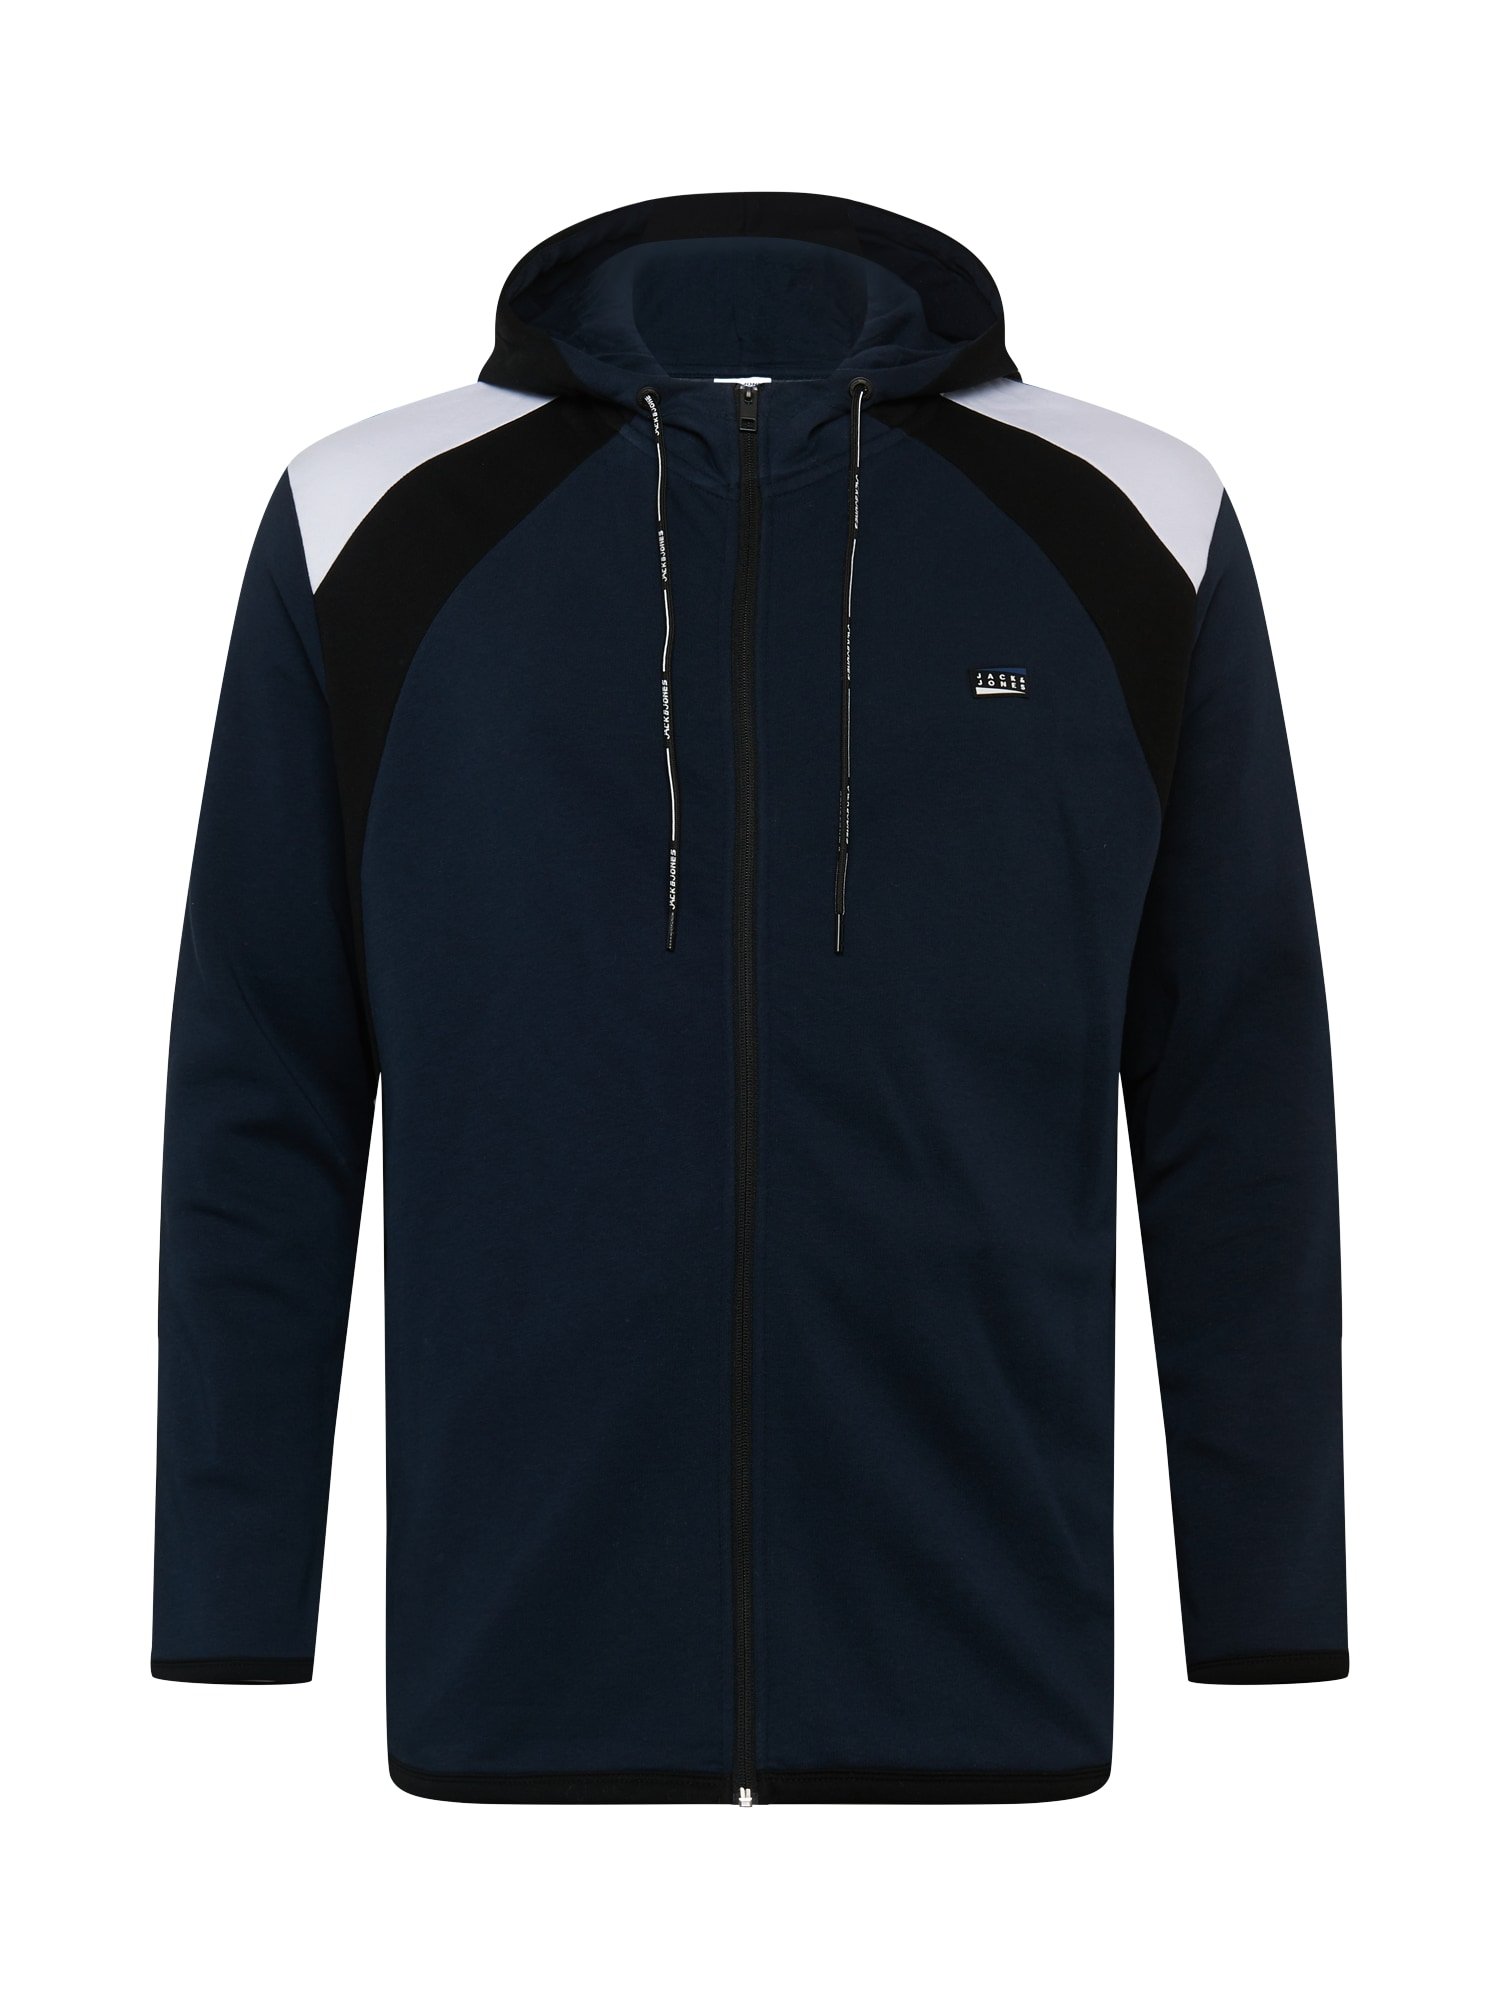 Jack & Jones Plus Džemperis juoda / nakties mėlyna / balta